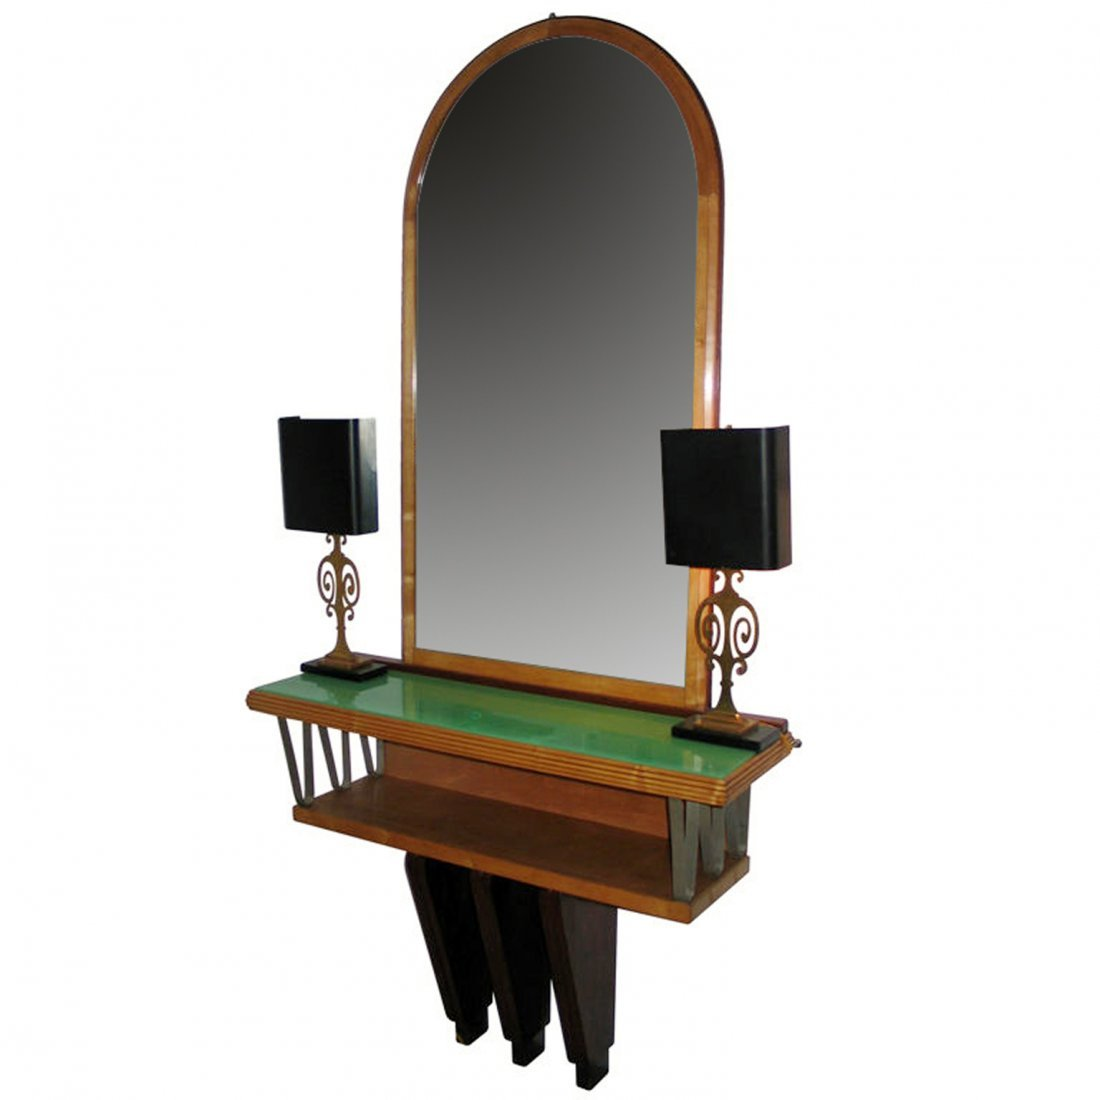 An Italian maple mirror back console table, c.1930, the